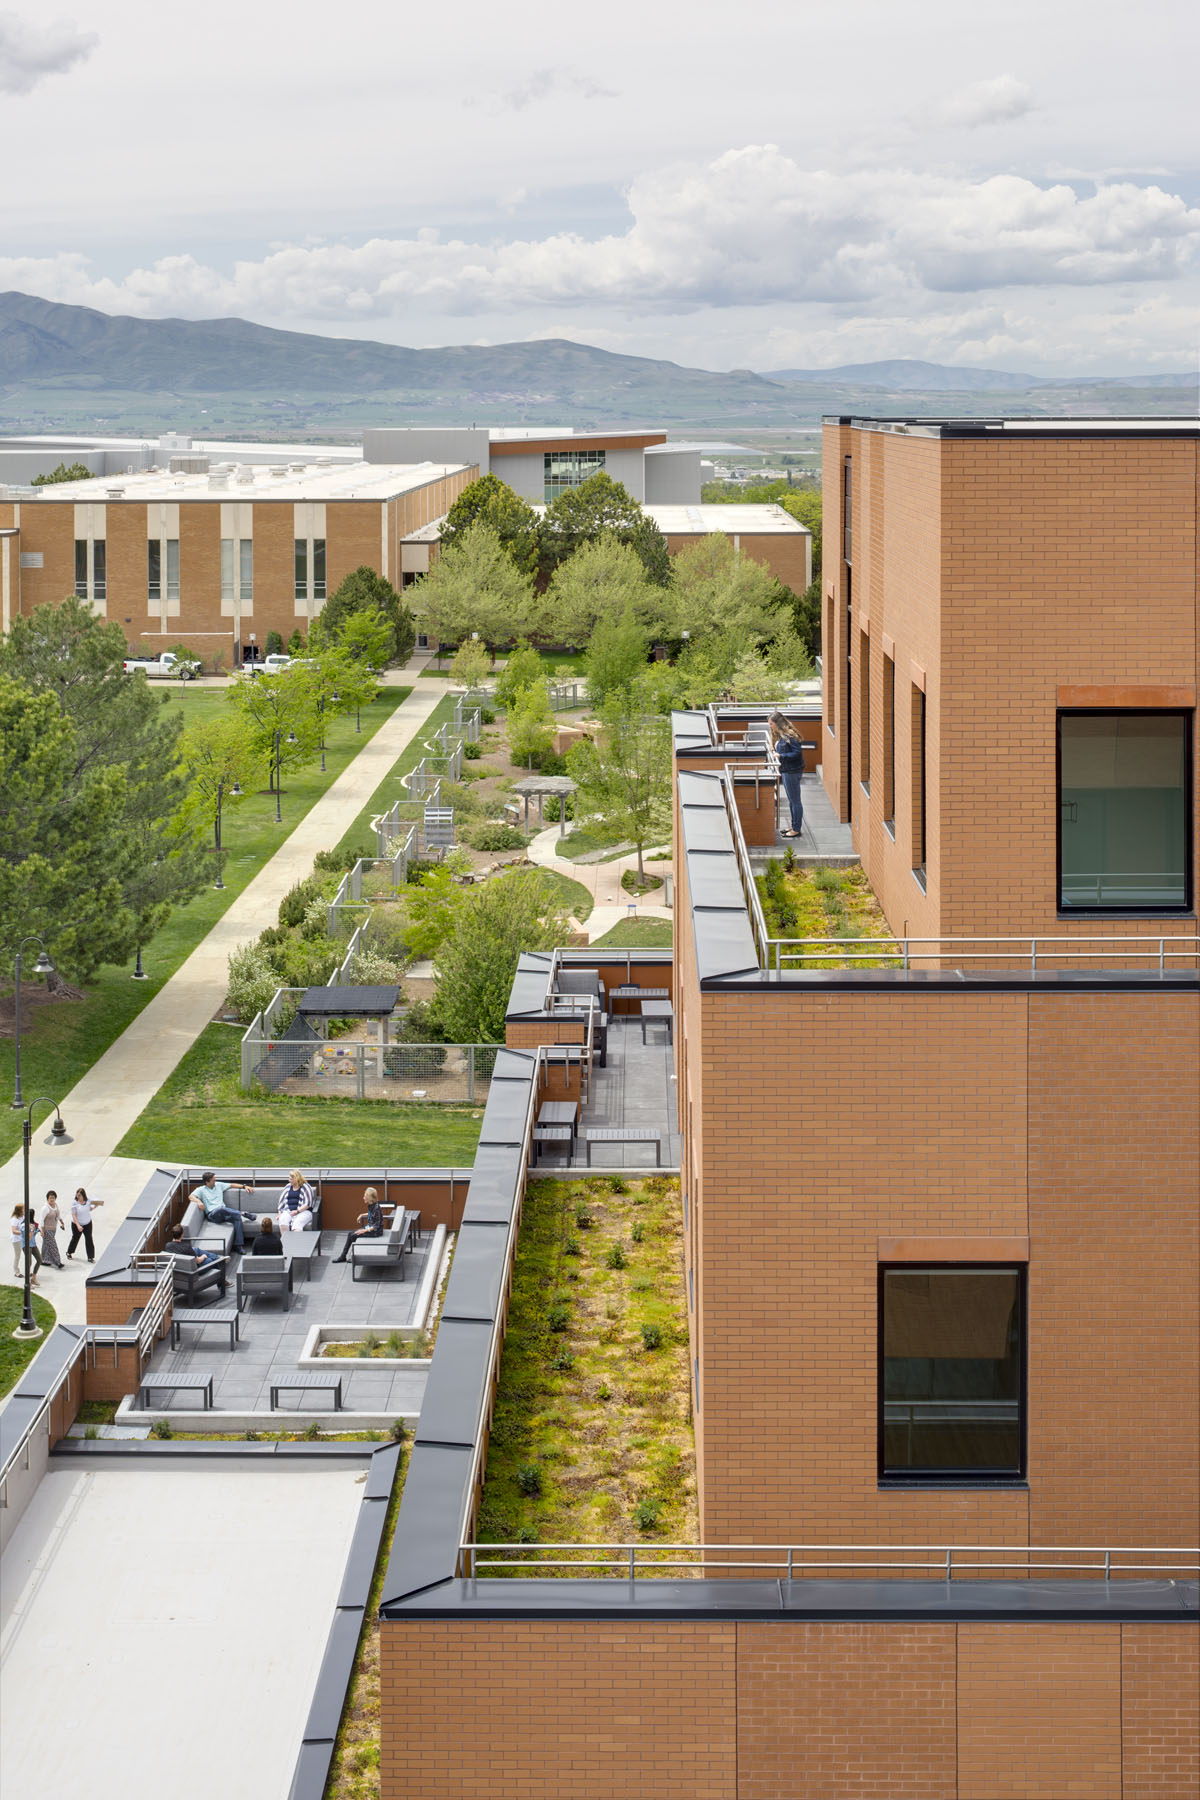 Rooftop decks with outdoor furniture and green roofs are part of the healthcare design.